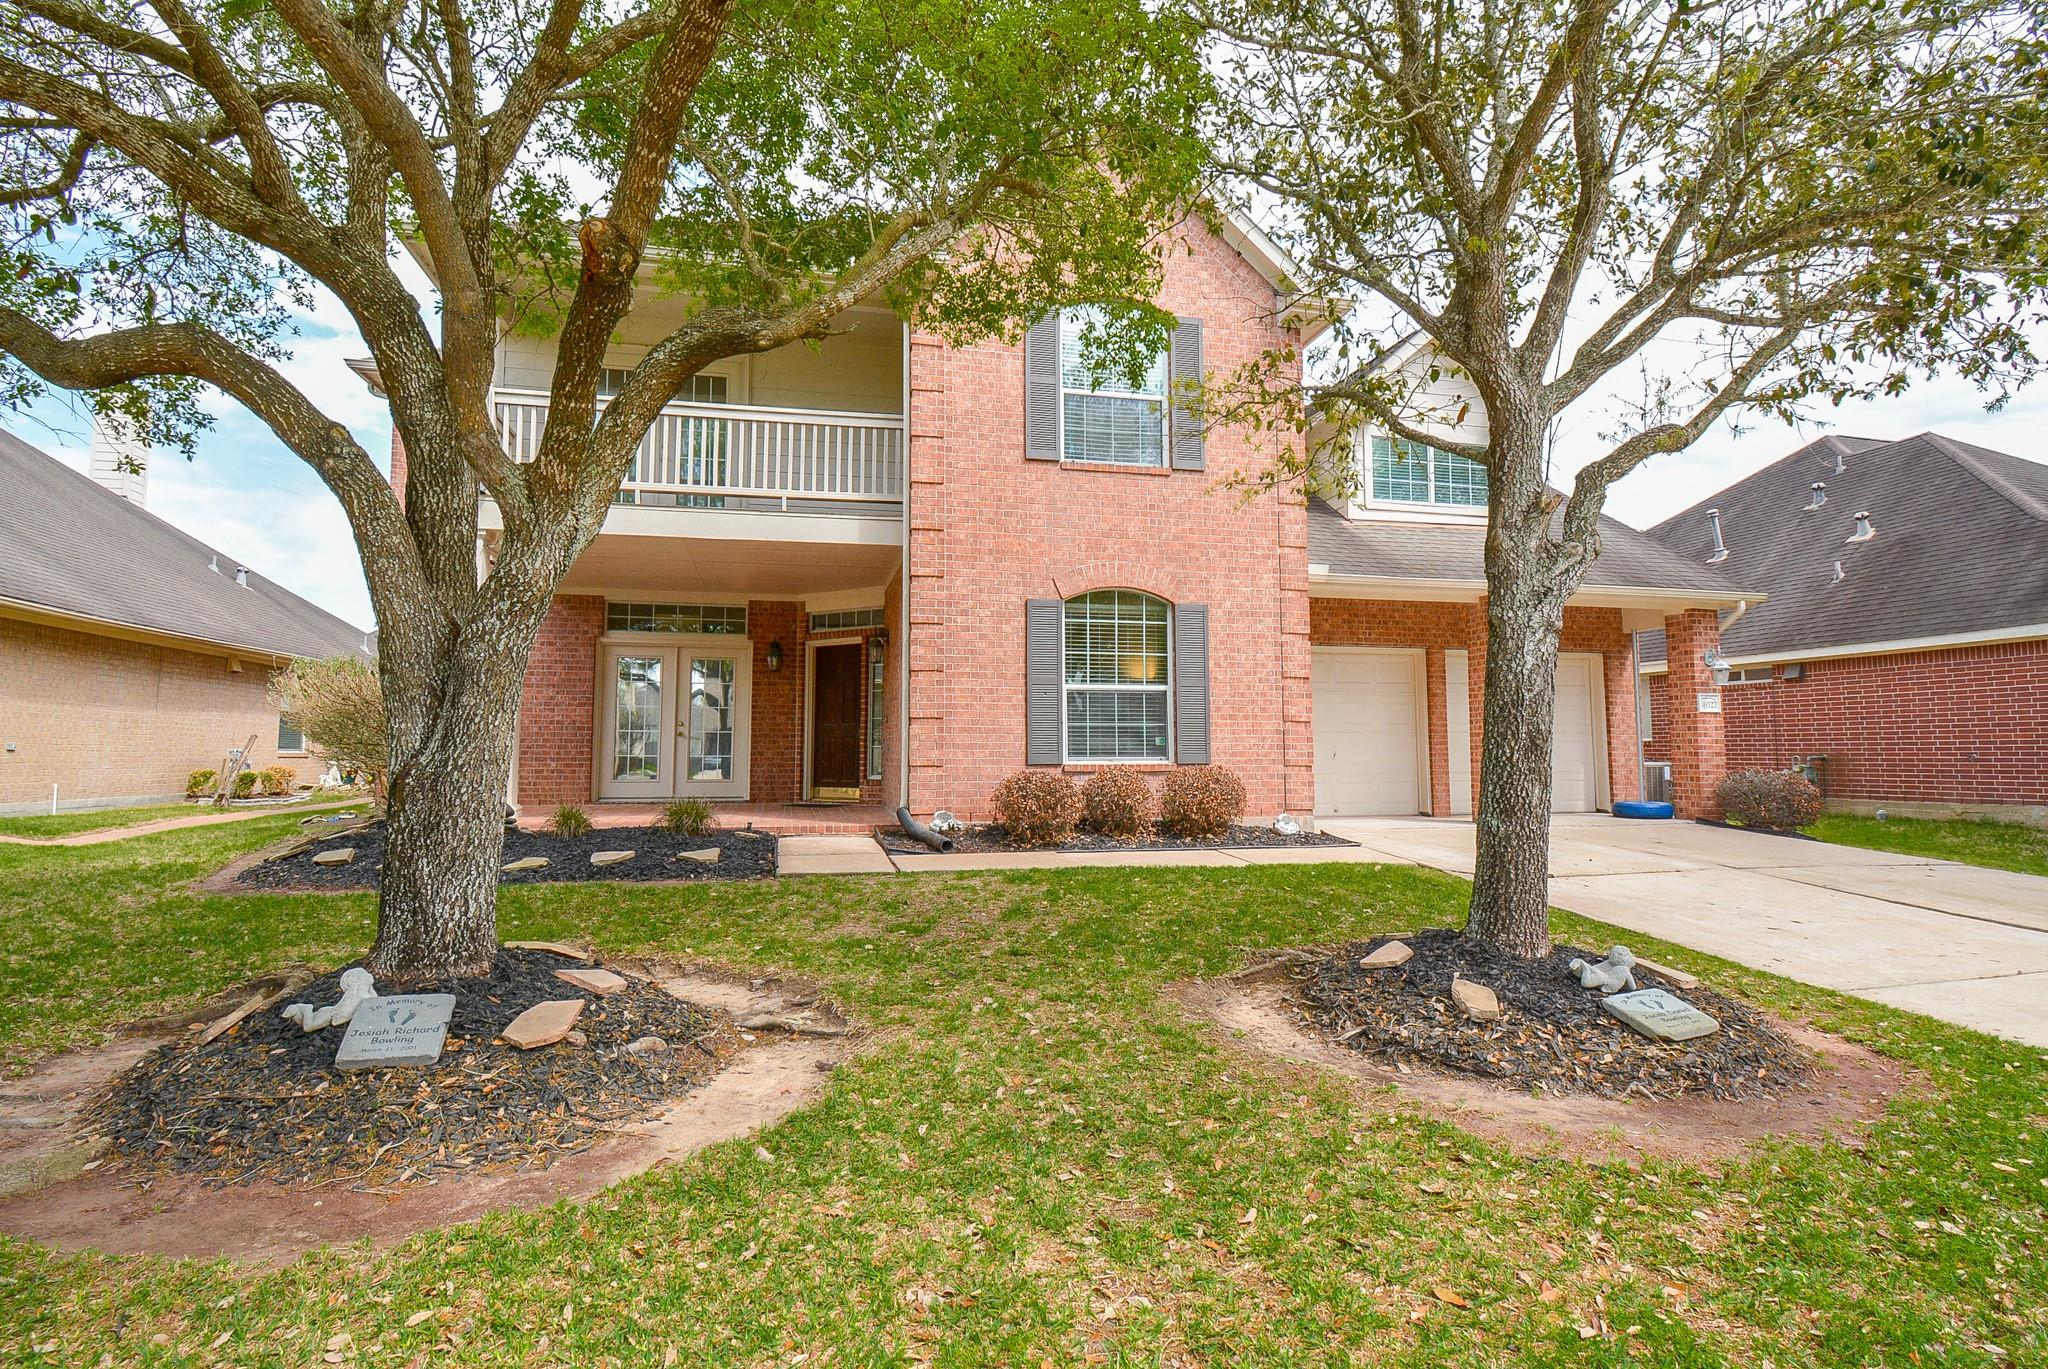 4027 Elm Stream Court Property Photo - Fresno, TX real estate listing